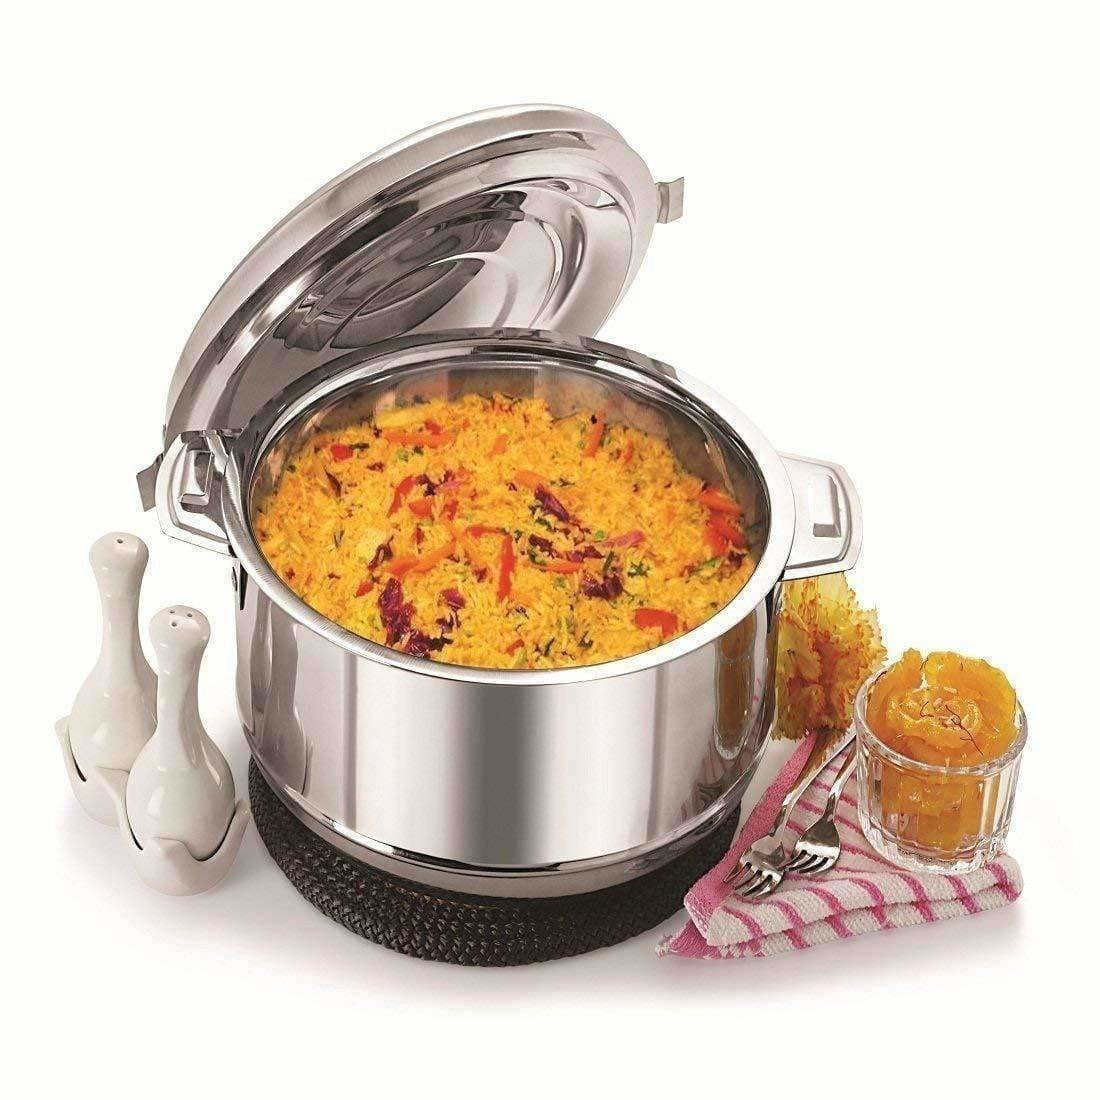 Stainless Steel Insulated Casserole 3 Pices